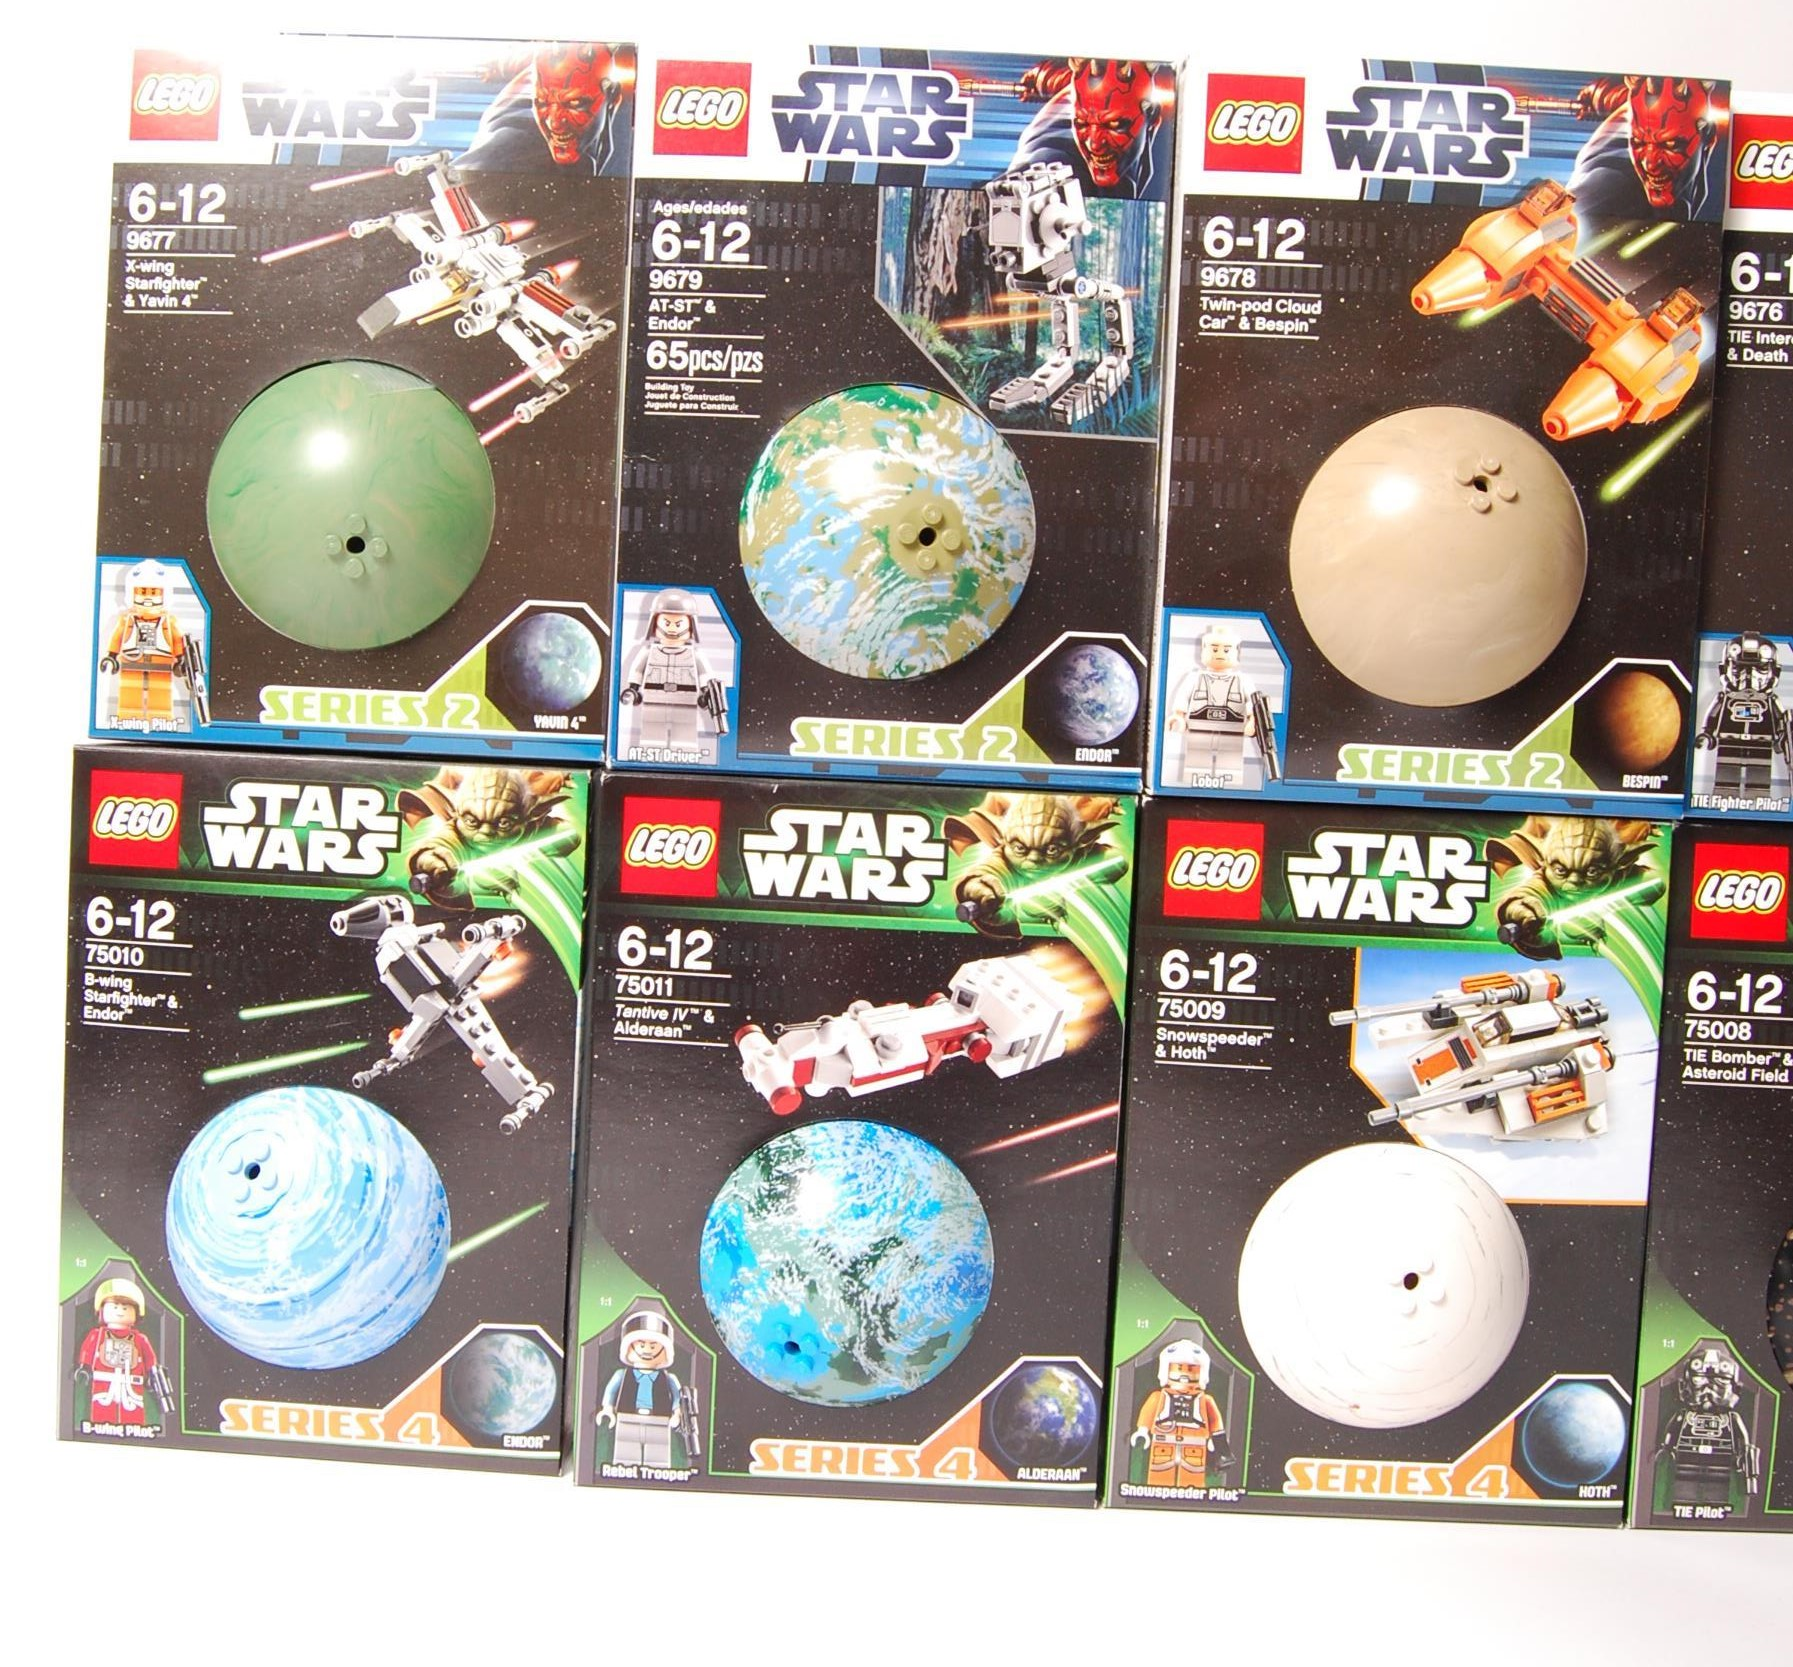 Lot 4 - COMPLETE SET OF STAR WARS ' PLANETS ' SERIES 1-4 B